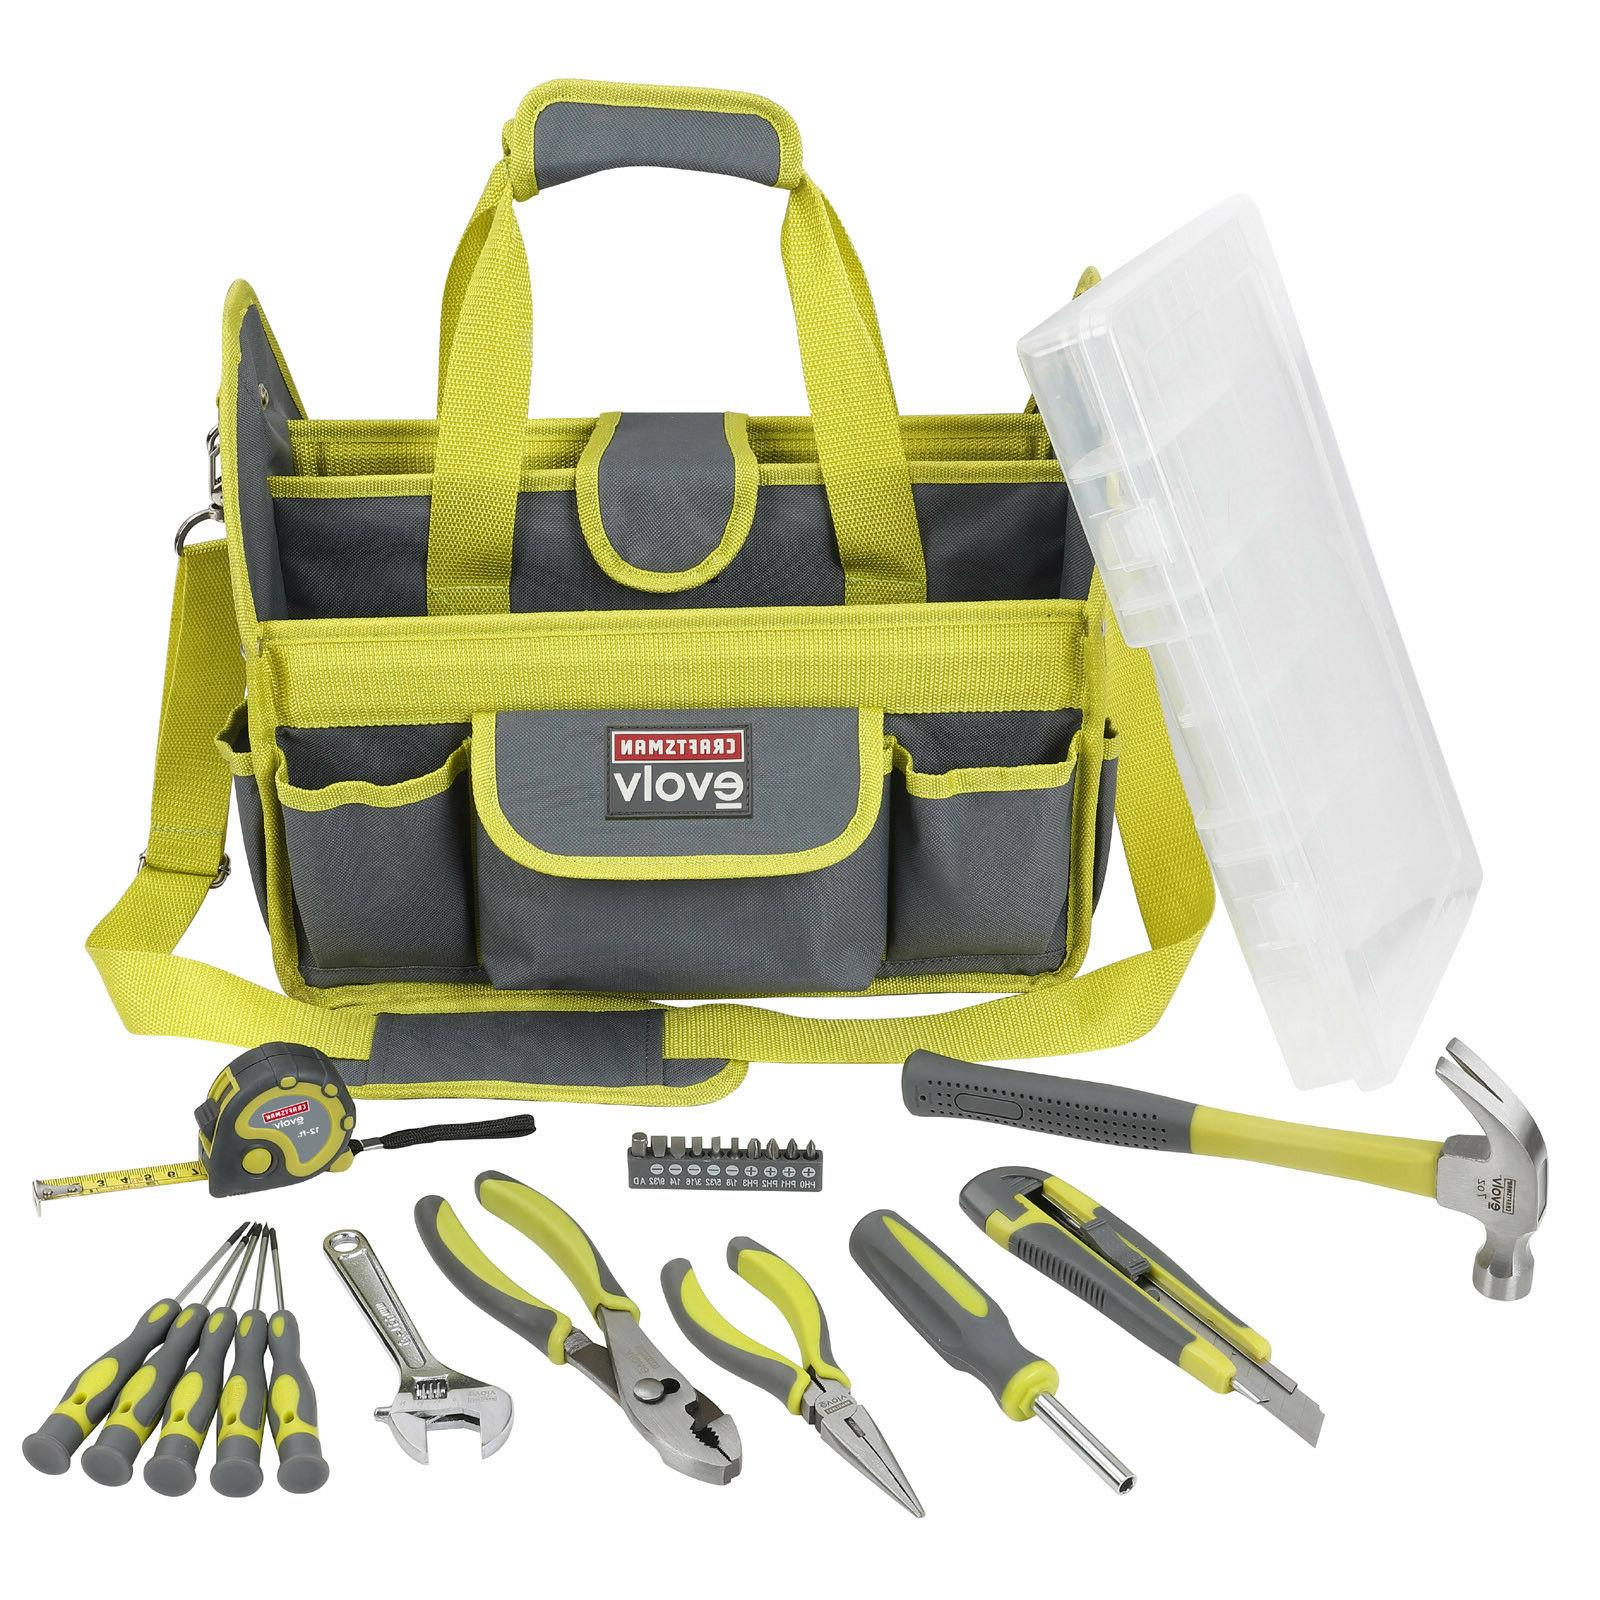 Craftsman Evolv Homeowner Tool Set 24 Piece with Green Carry